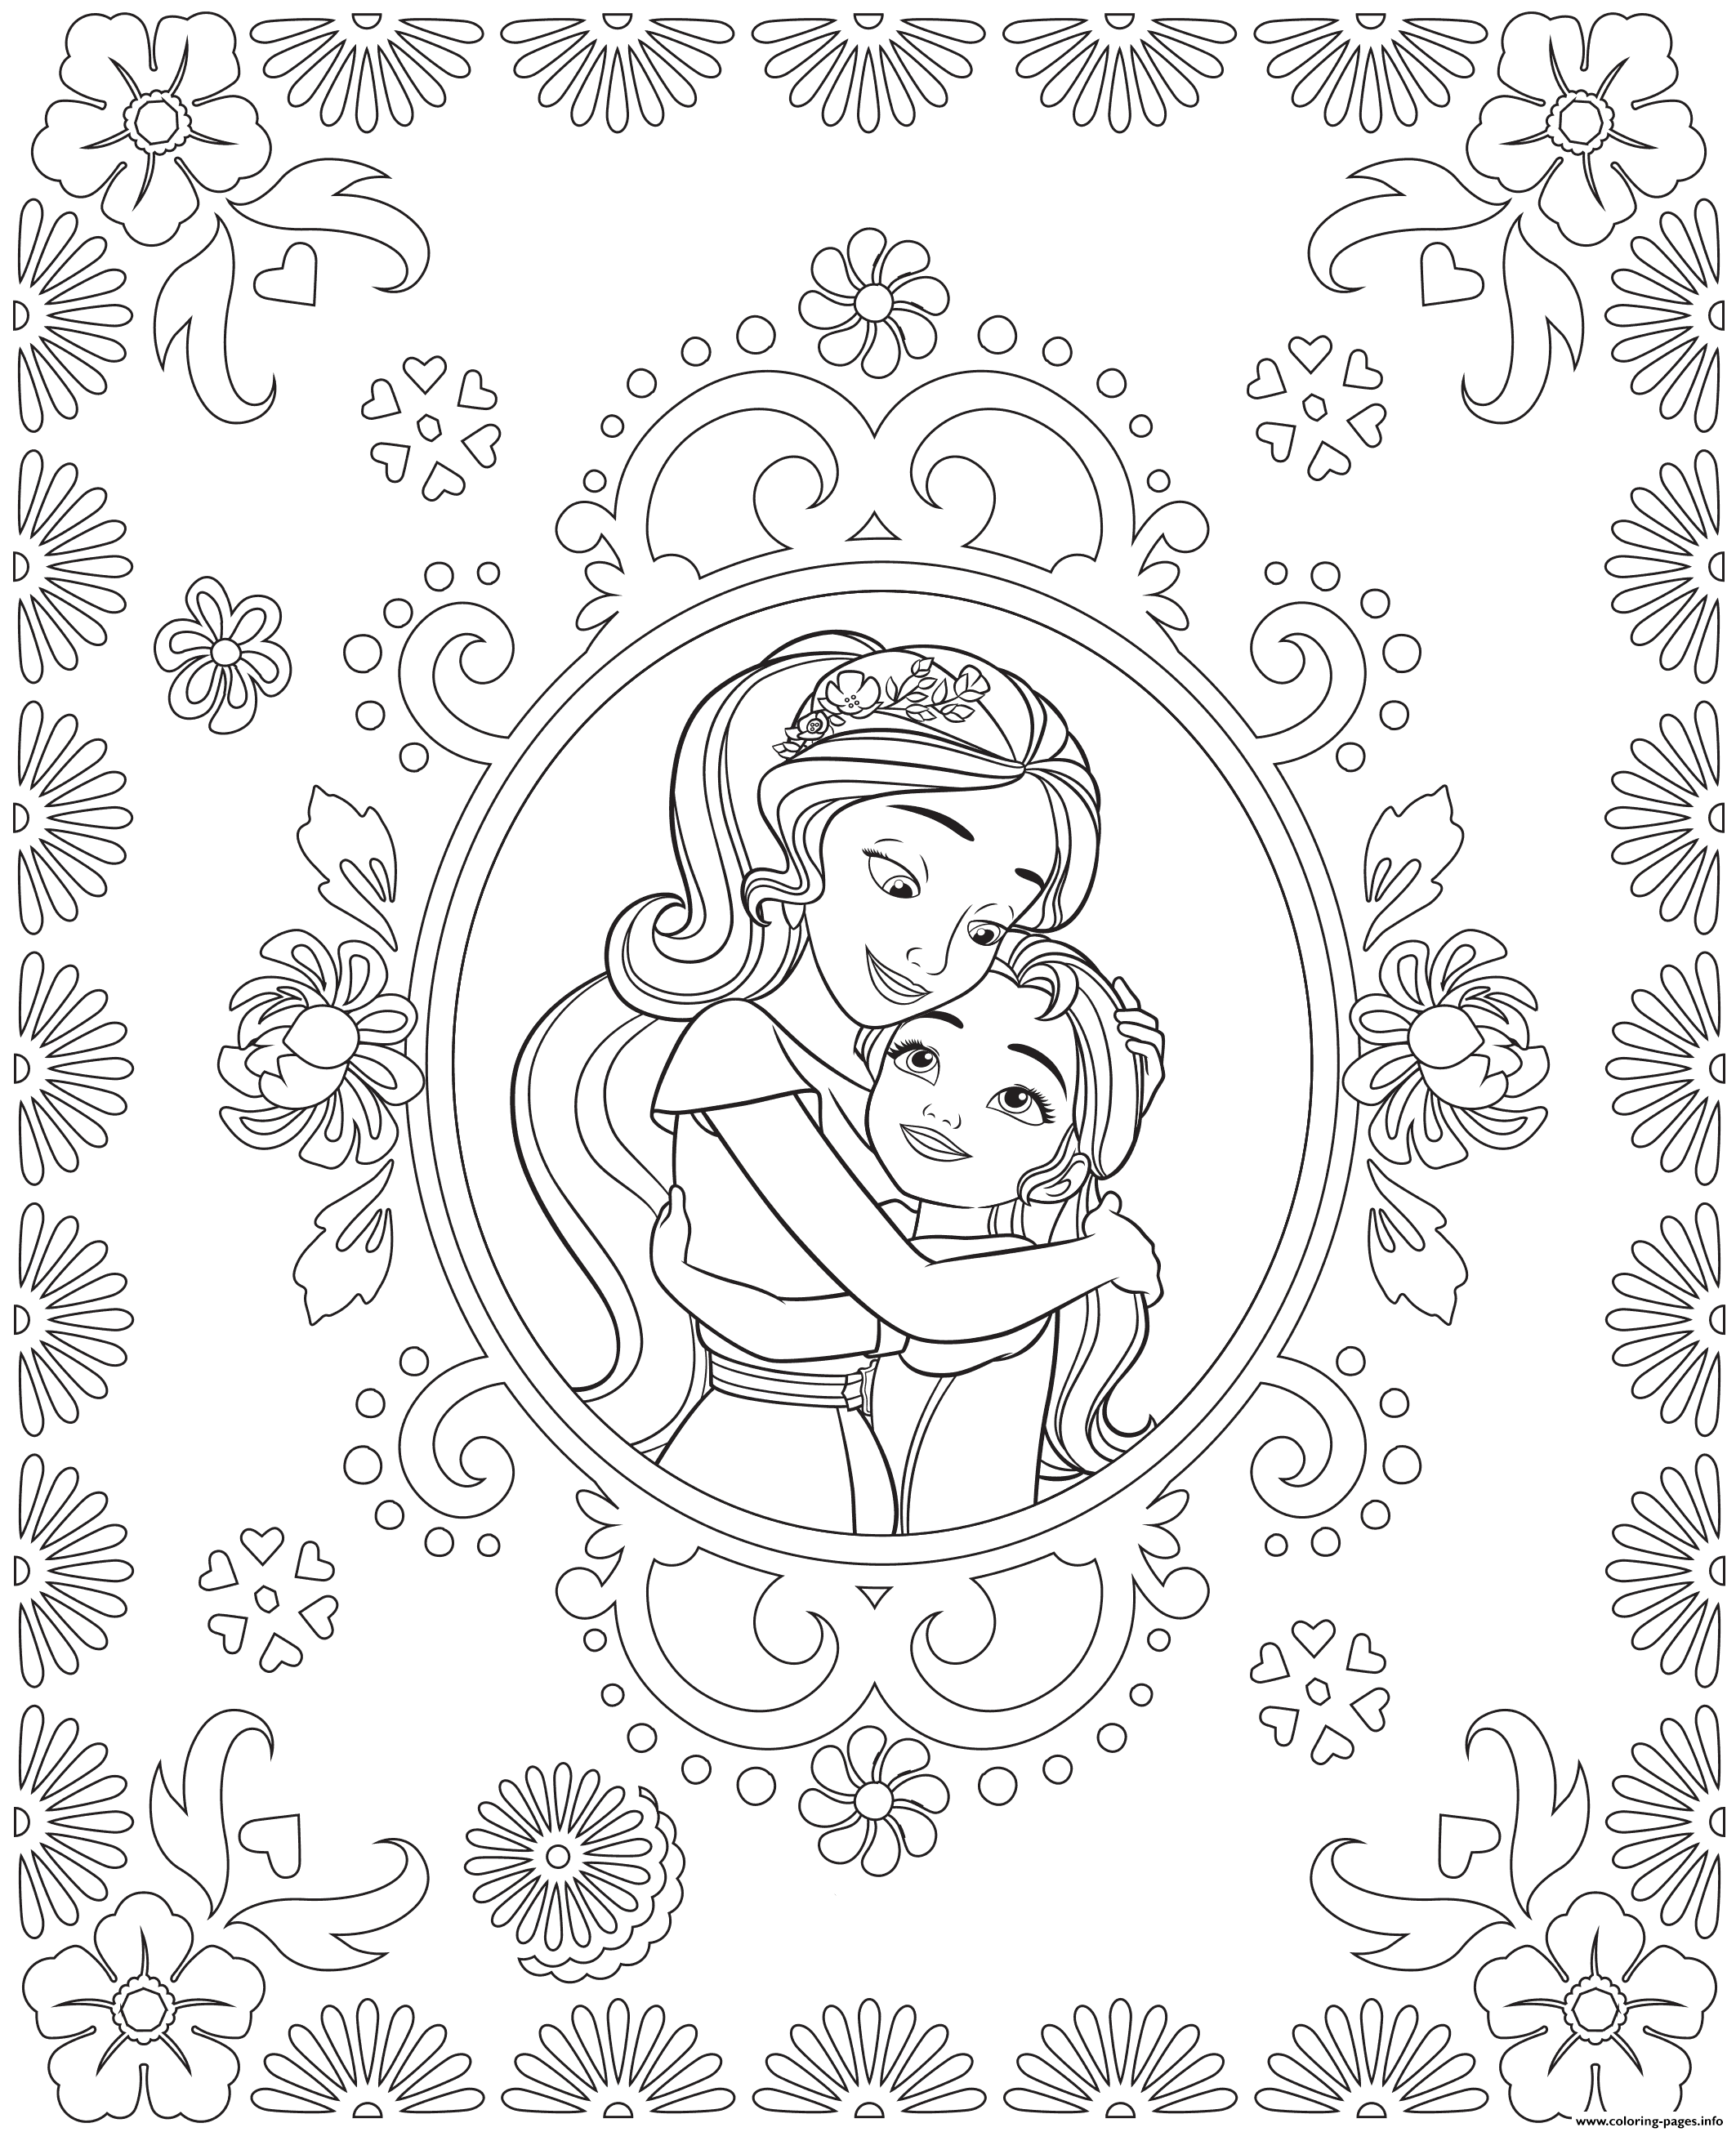 Incredible Elena Avalor coloring page to print and color for free